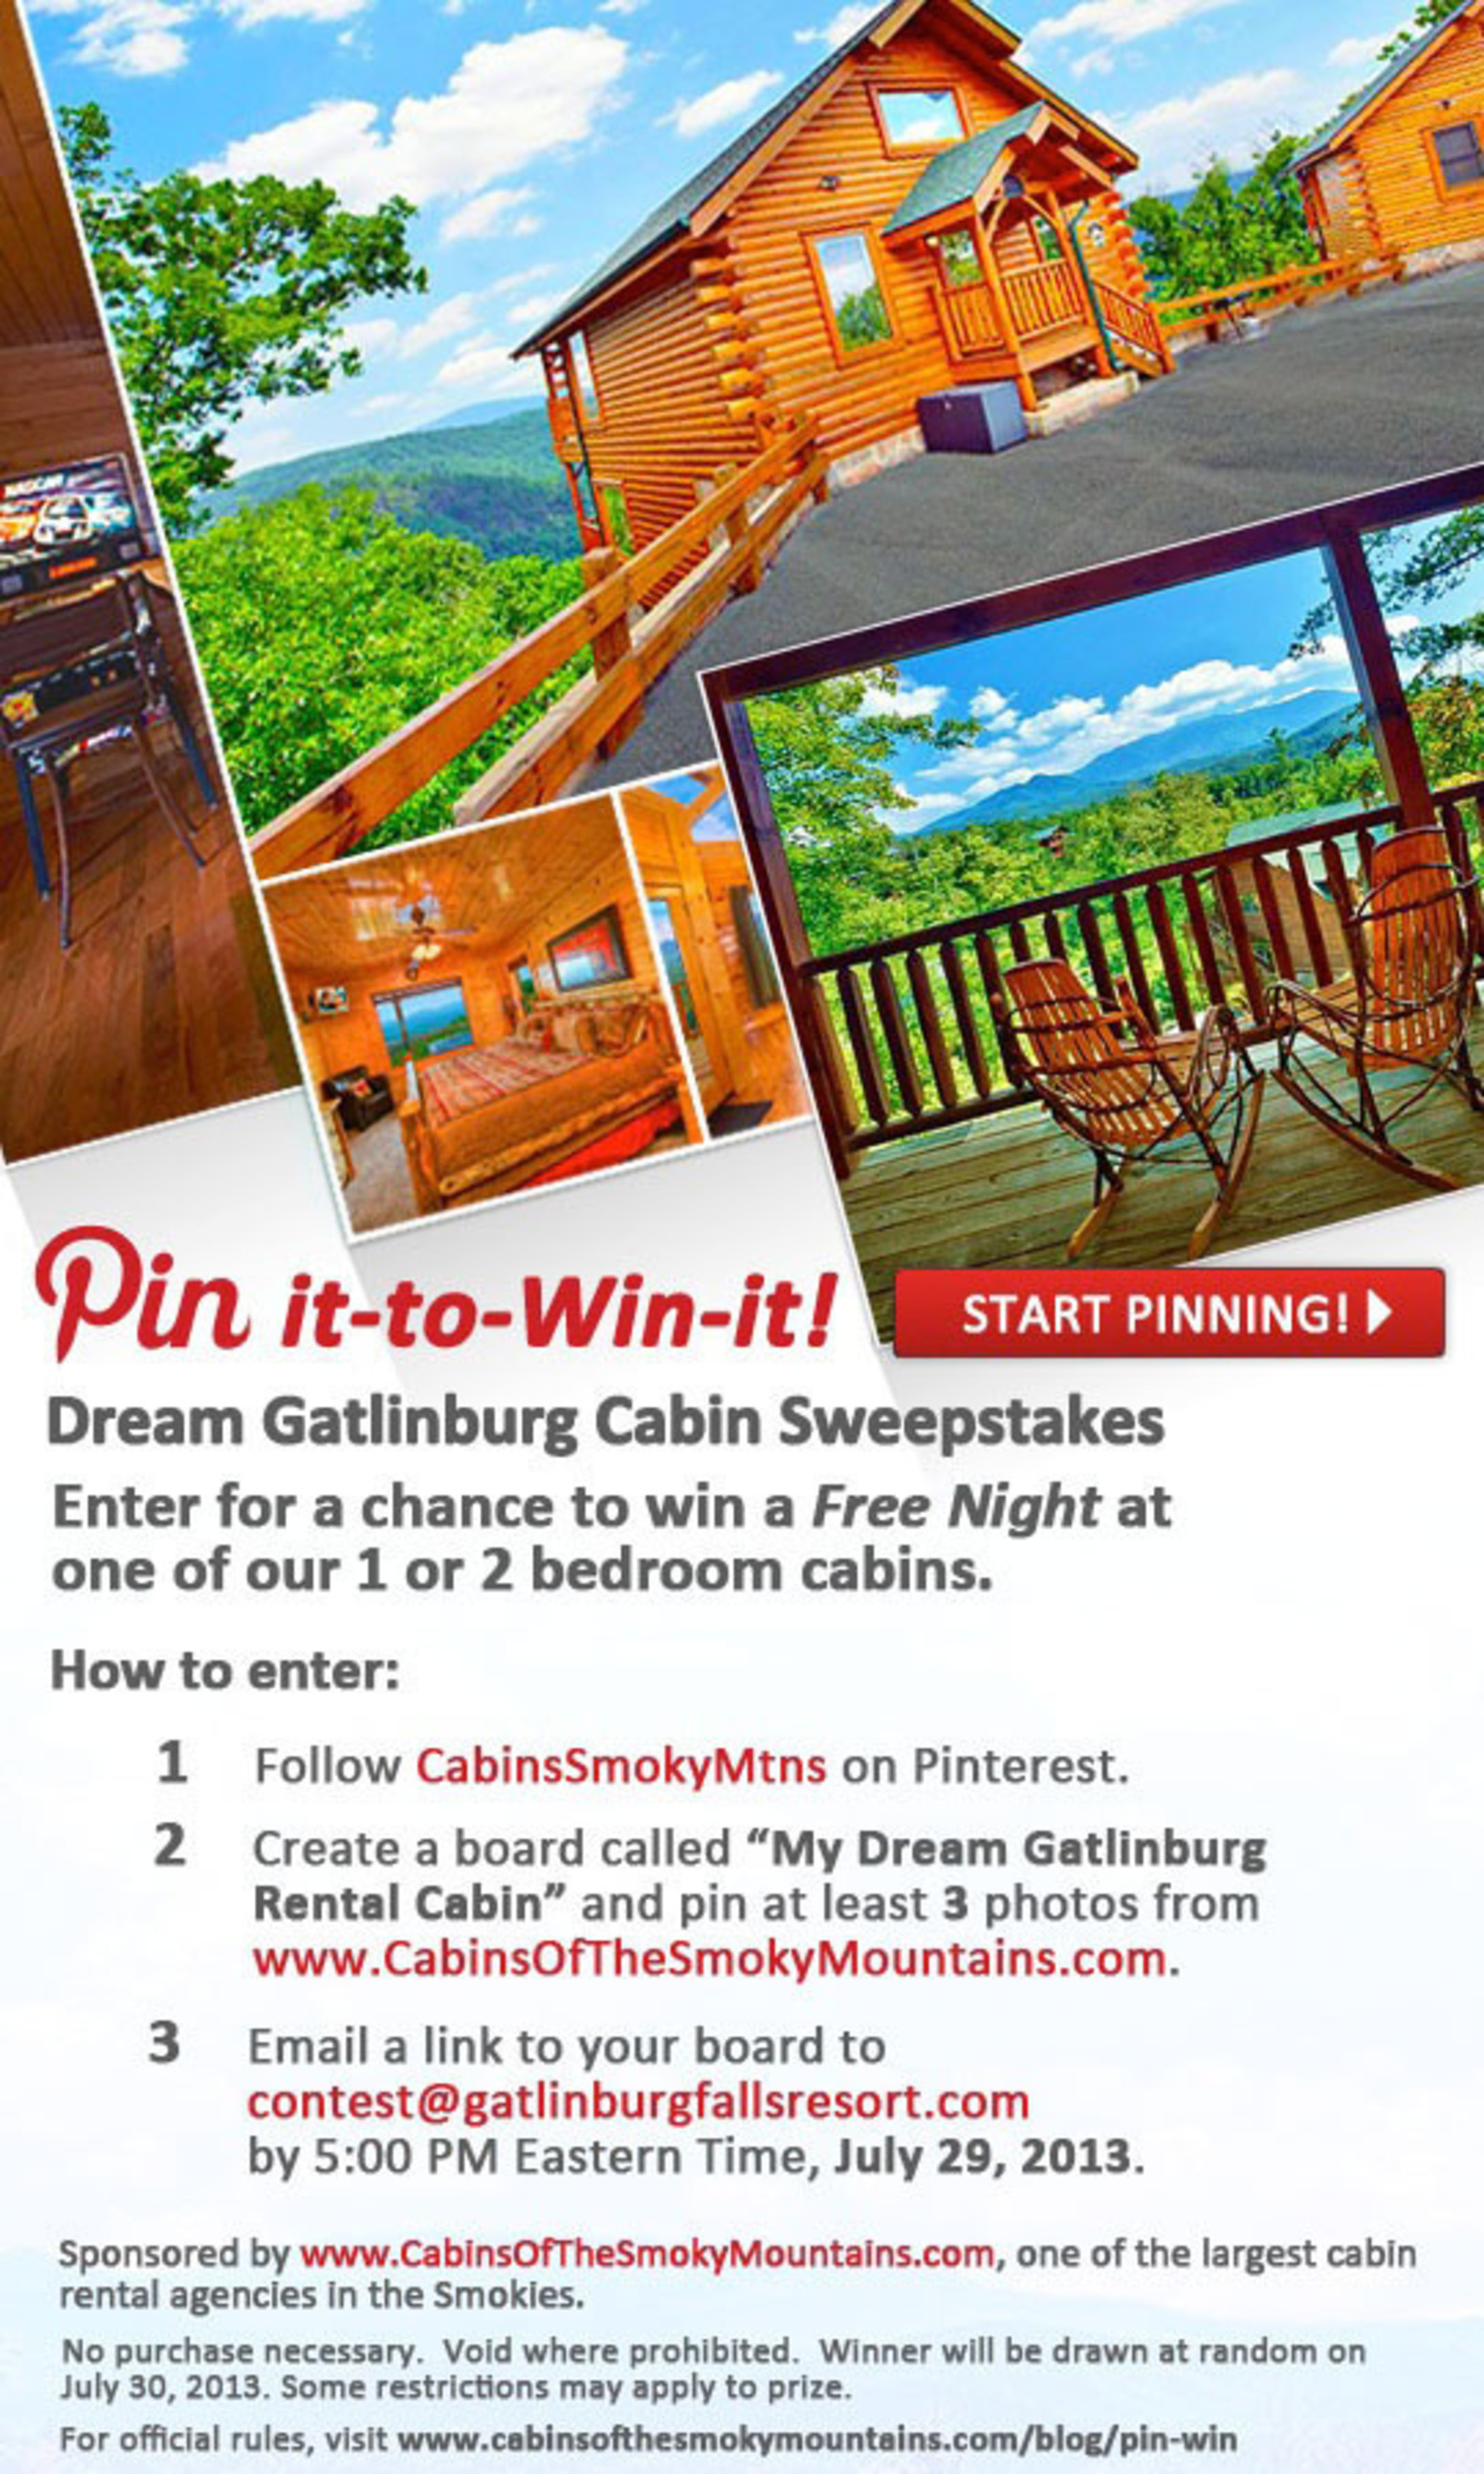 Pin It To Win It Dream Gatlinburg Cabin Sweepstakes.  (PRNewsFoto/Cabins of the Smoky Mountains)